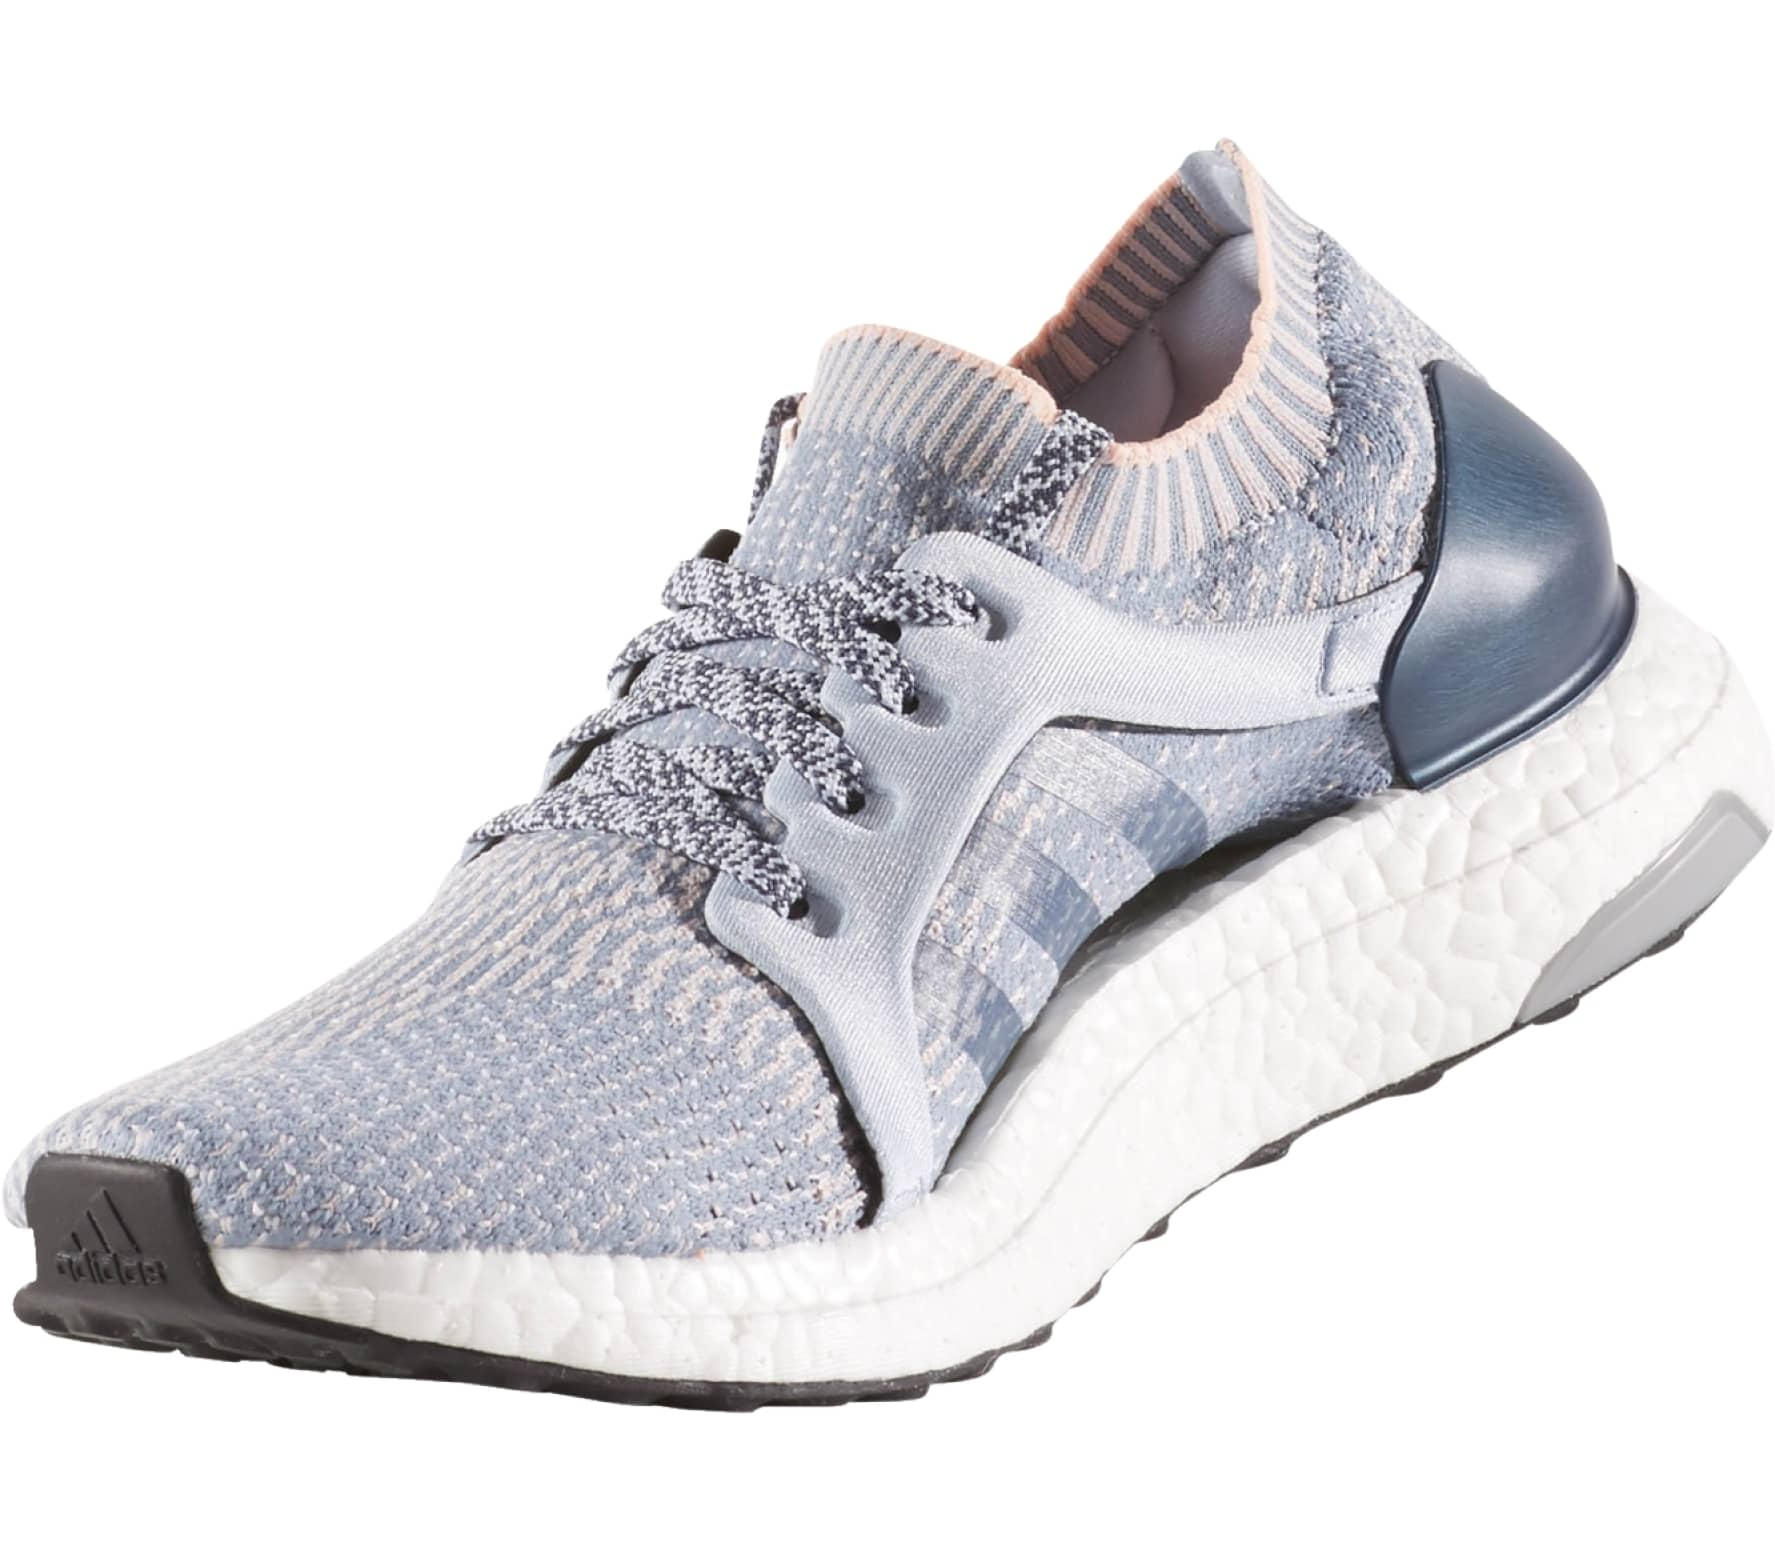 d6db0233775ba ... netherlands adidas ultra boost x womens running shoes light blue grey  4361b 75933